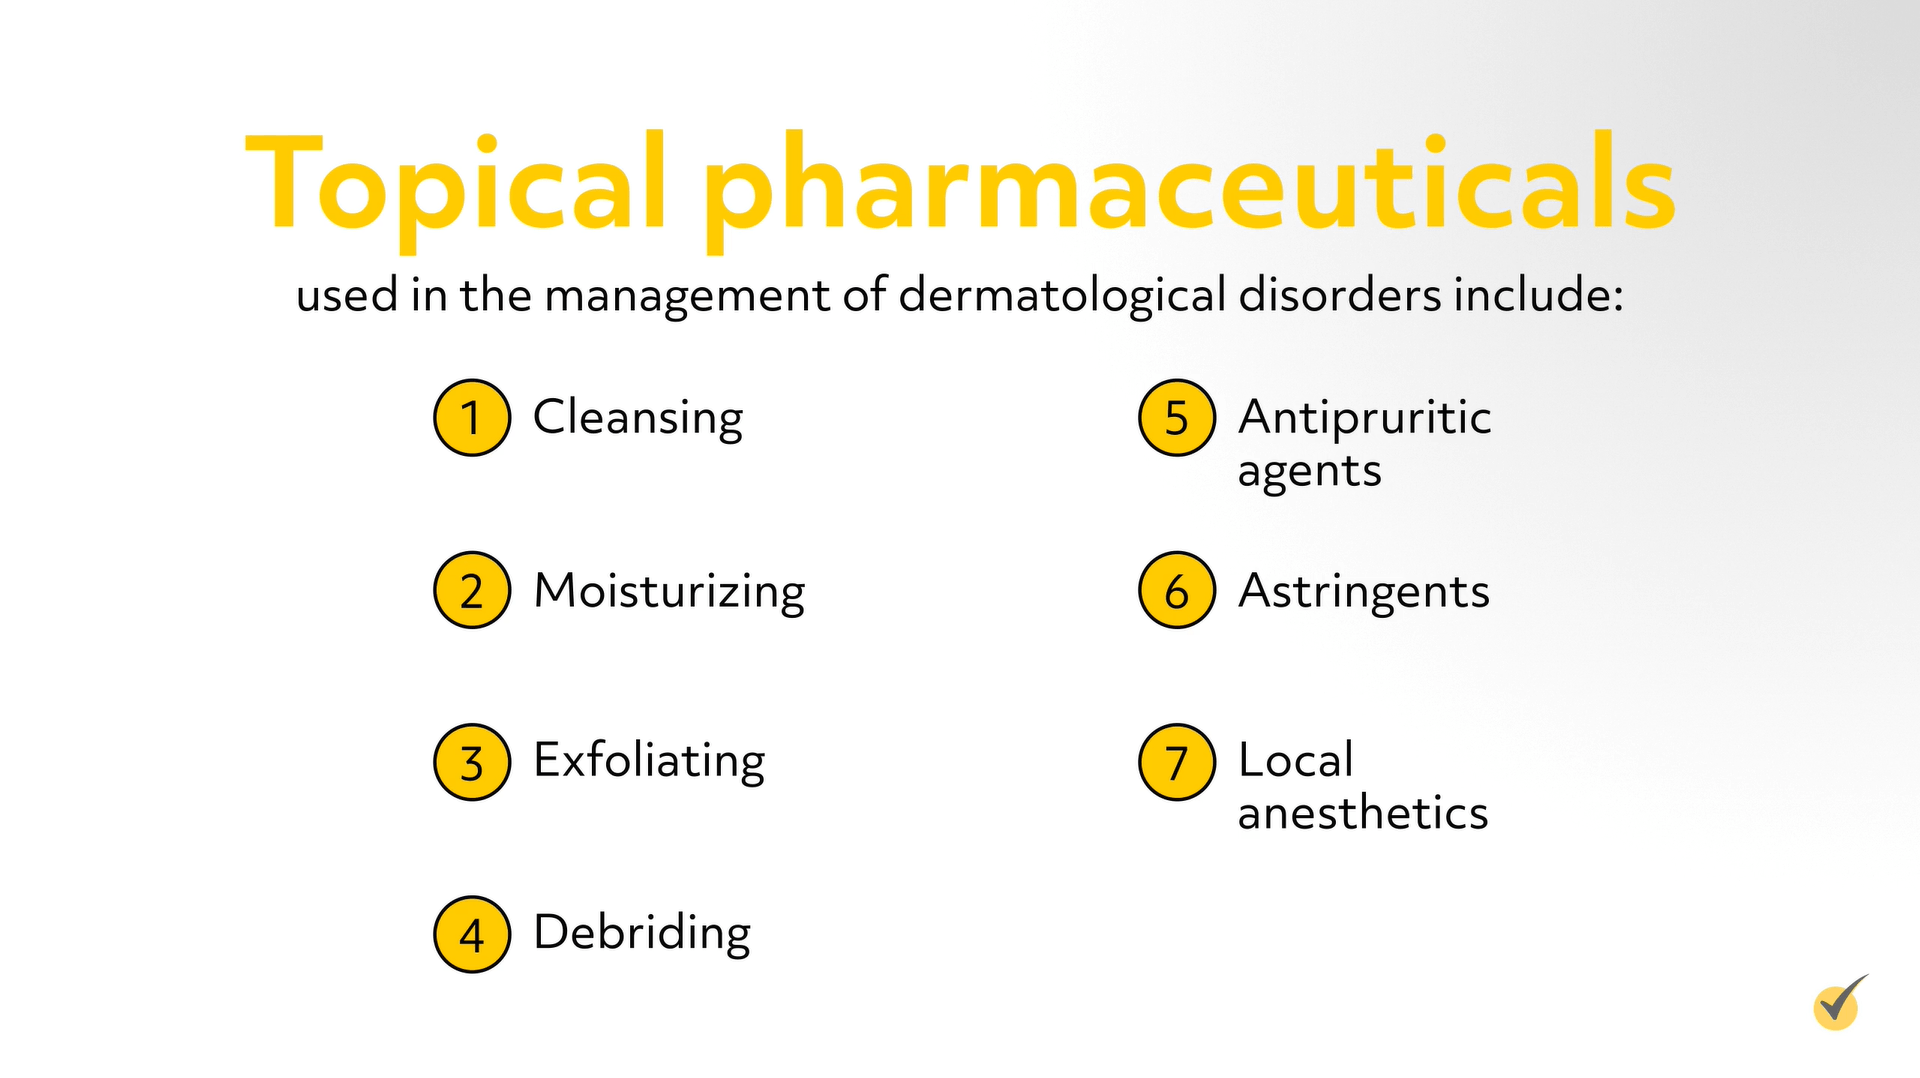 topical pharmaceuticals